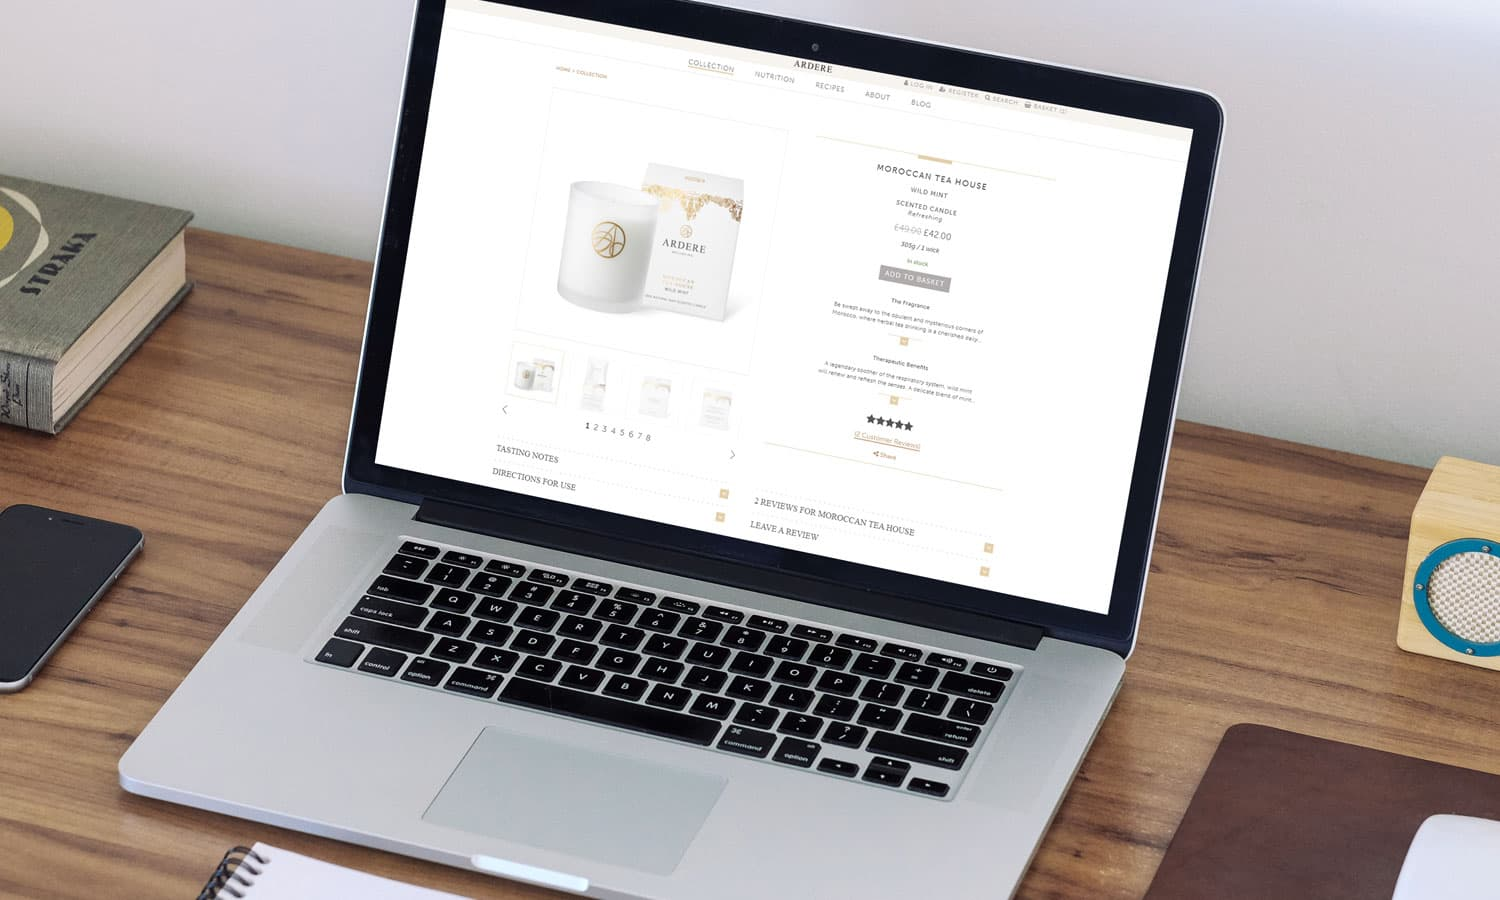 Ardere product page on laptop